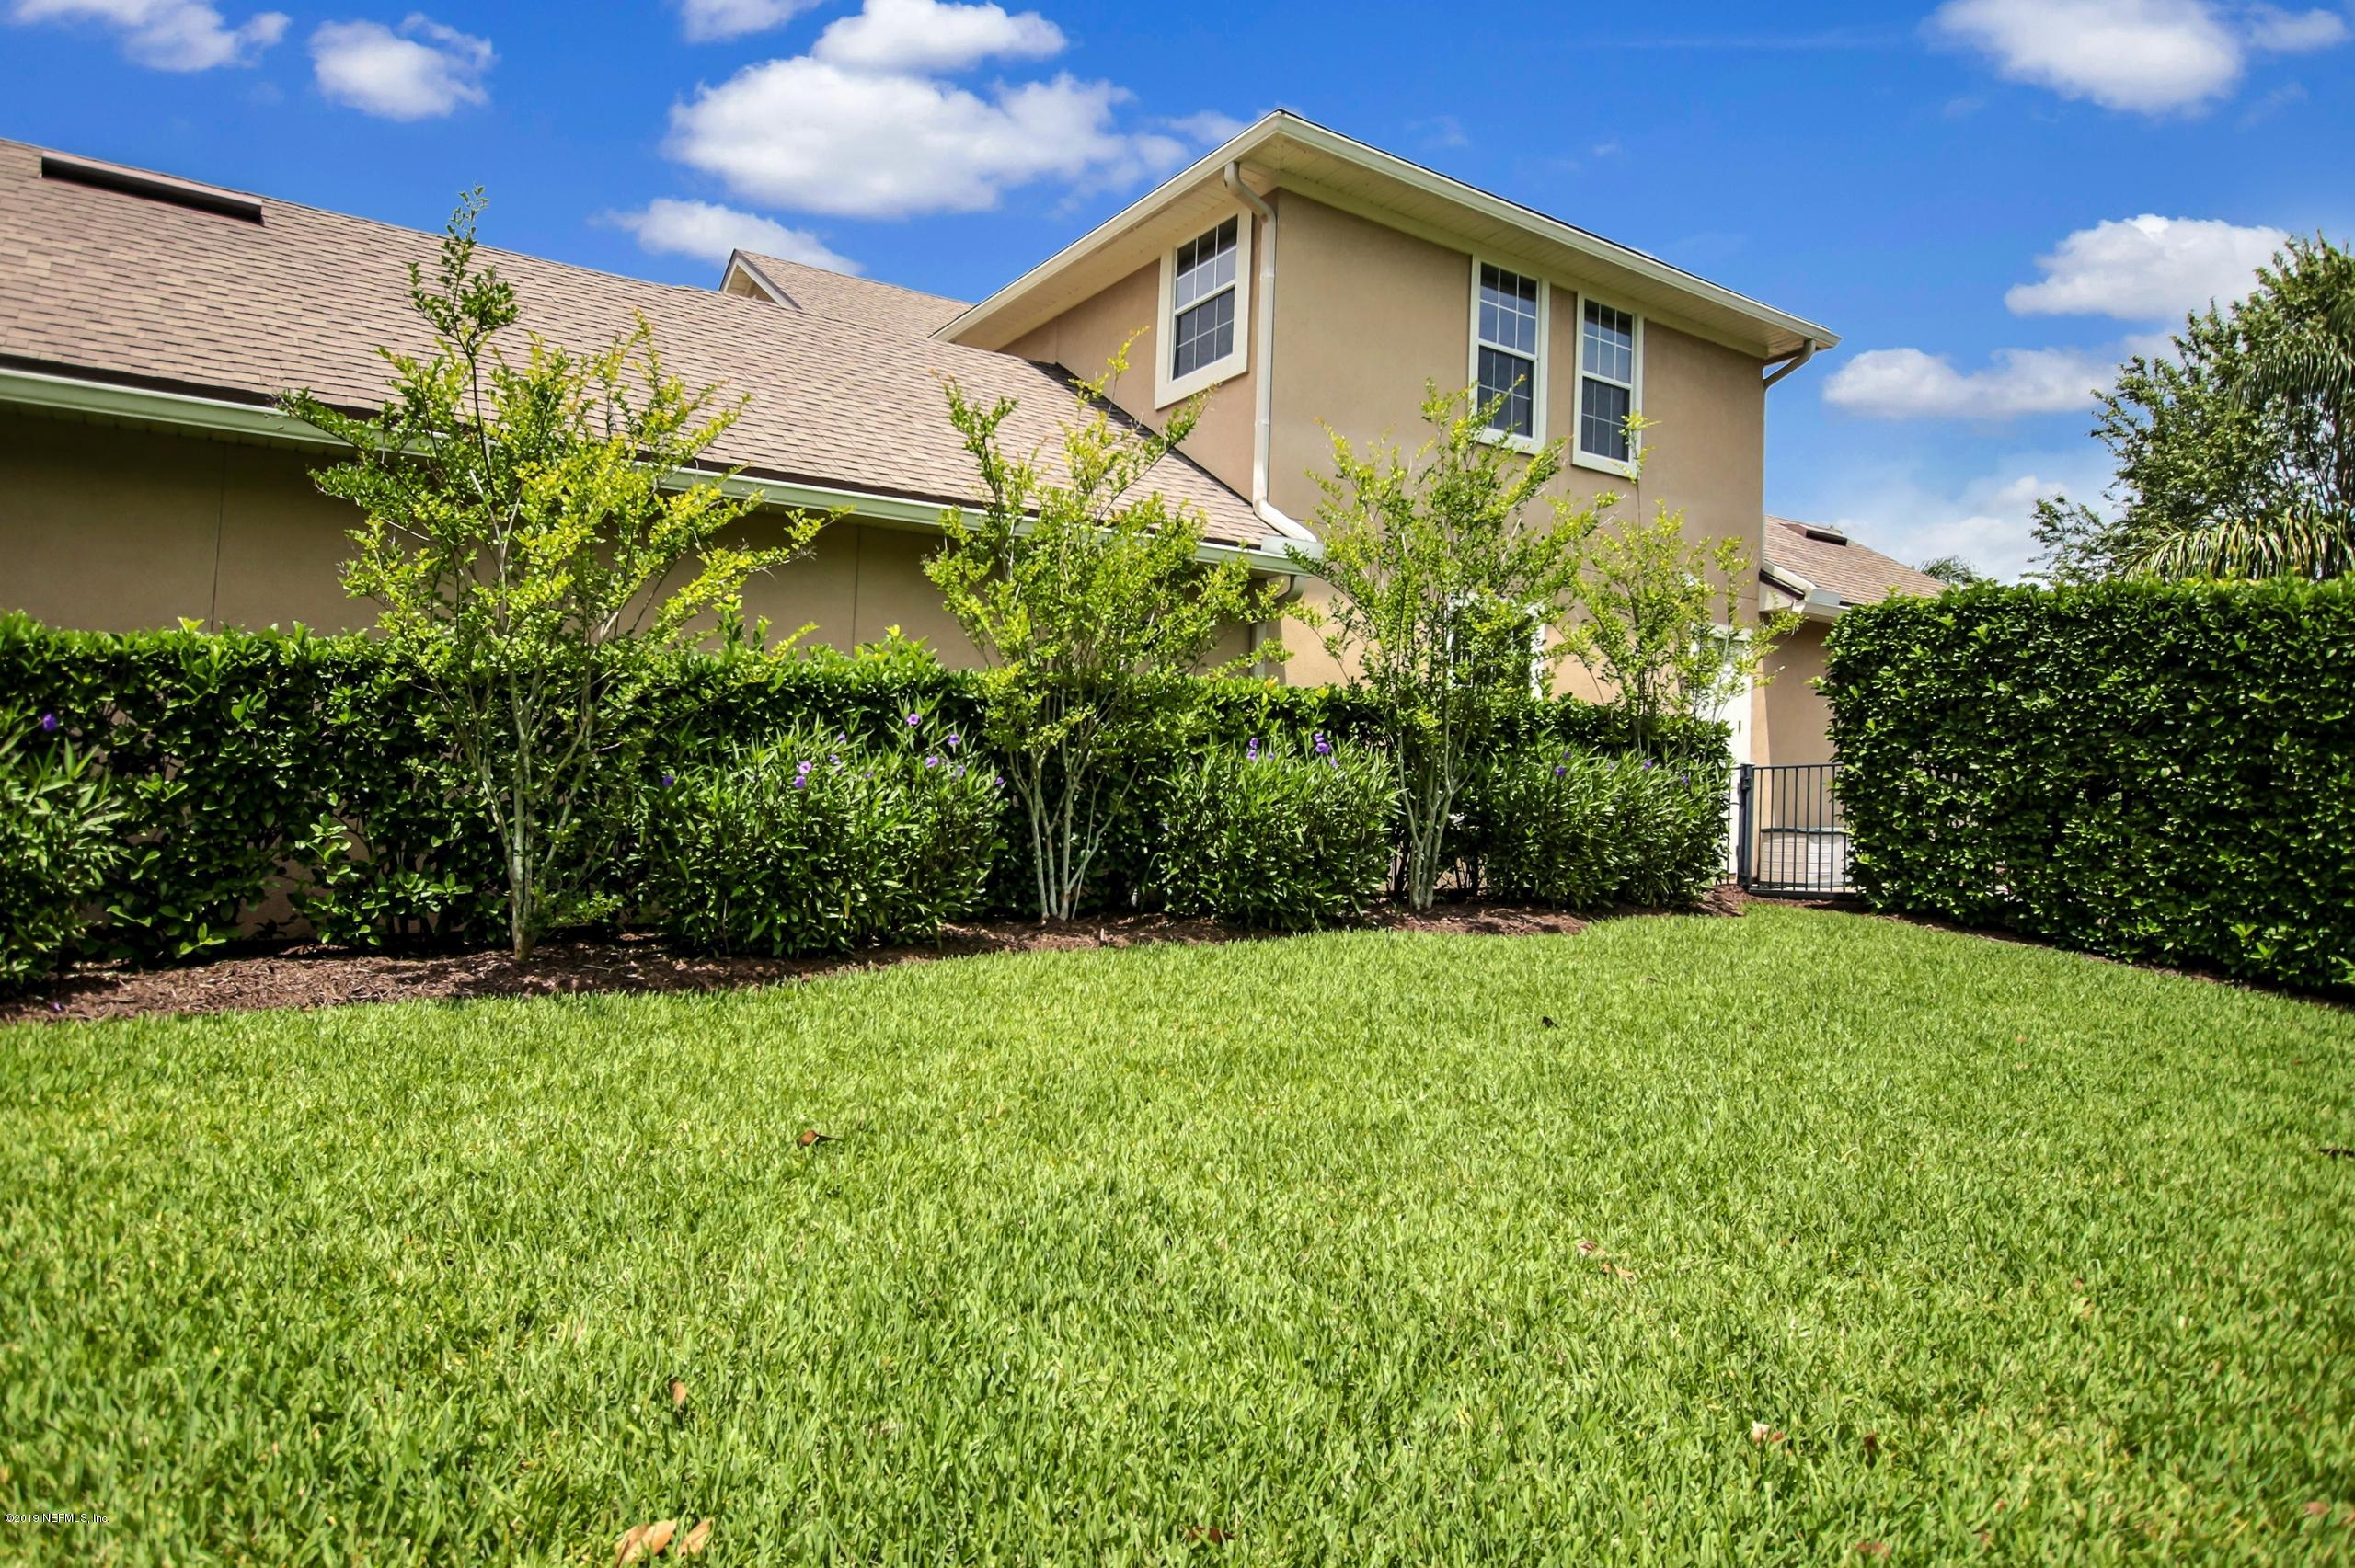 244 TOPSAIL, PONTE VEDRA, FLORIDA 32081, 5 Bedrooms Bedrooms, ,4 BathroomsBathrooms,Residential - single family,For sale,TOPSAIL,995187